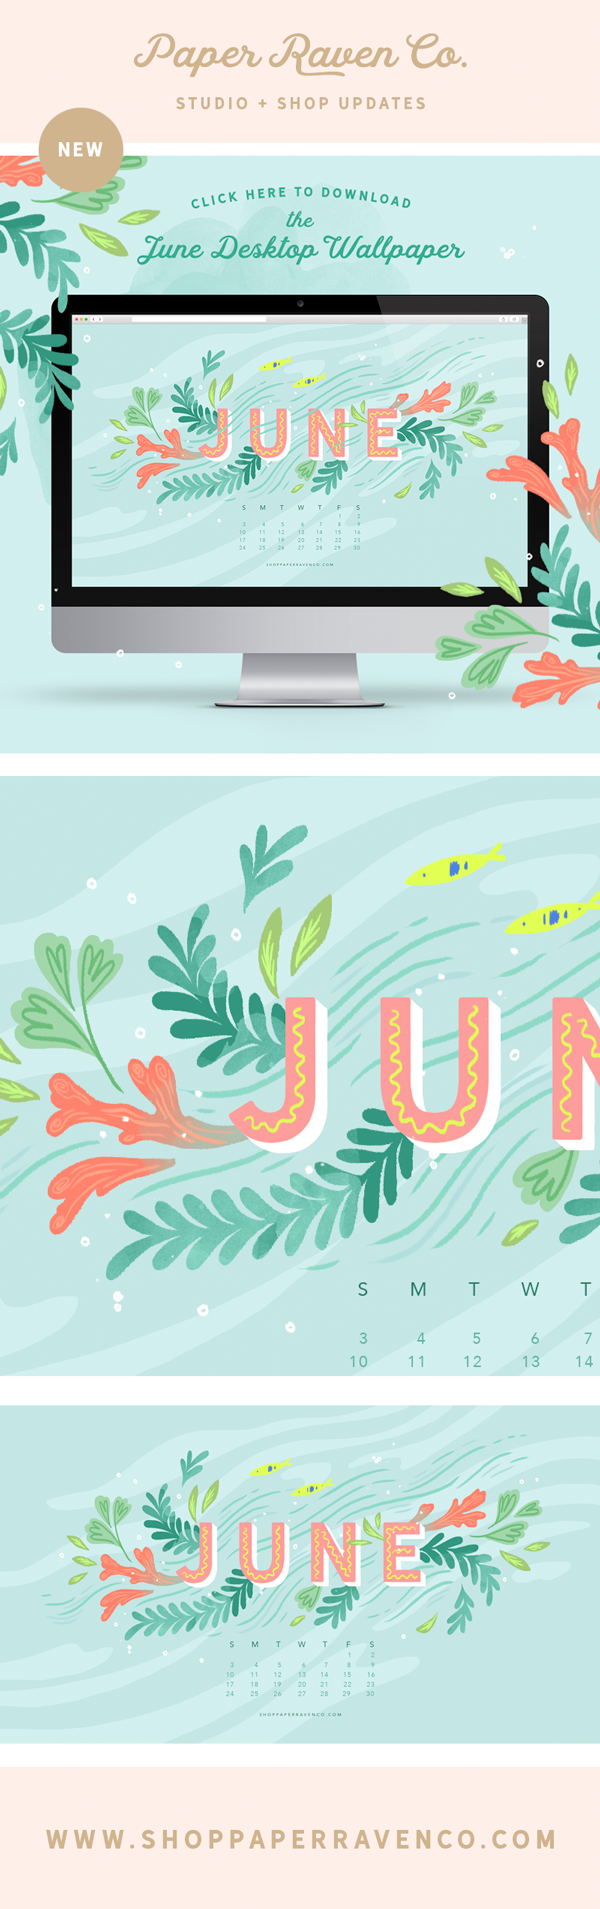 June 2018 Illustrated Desktop Wallpaper - Get it at www.ShopPaperRavenCo.com